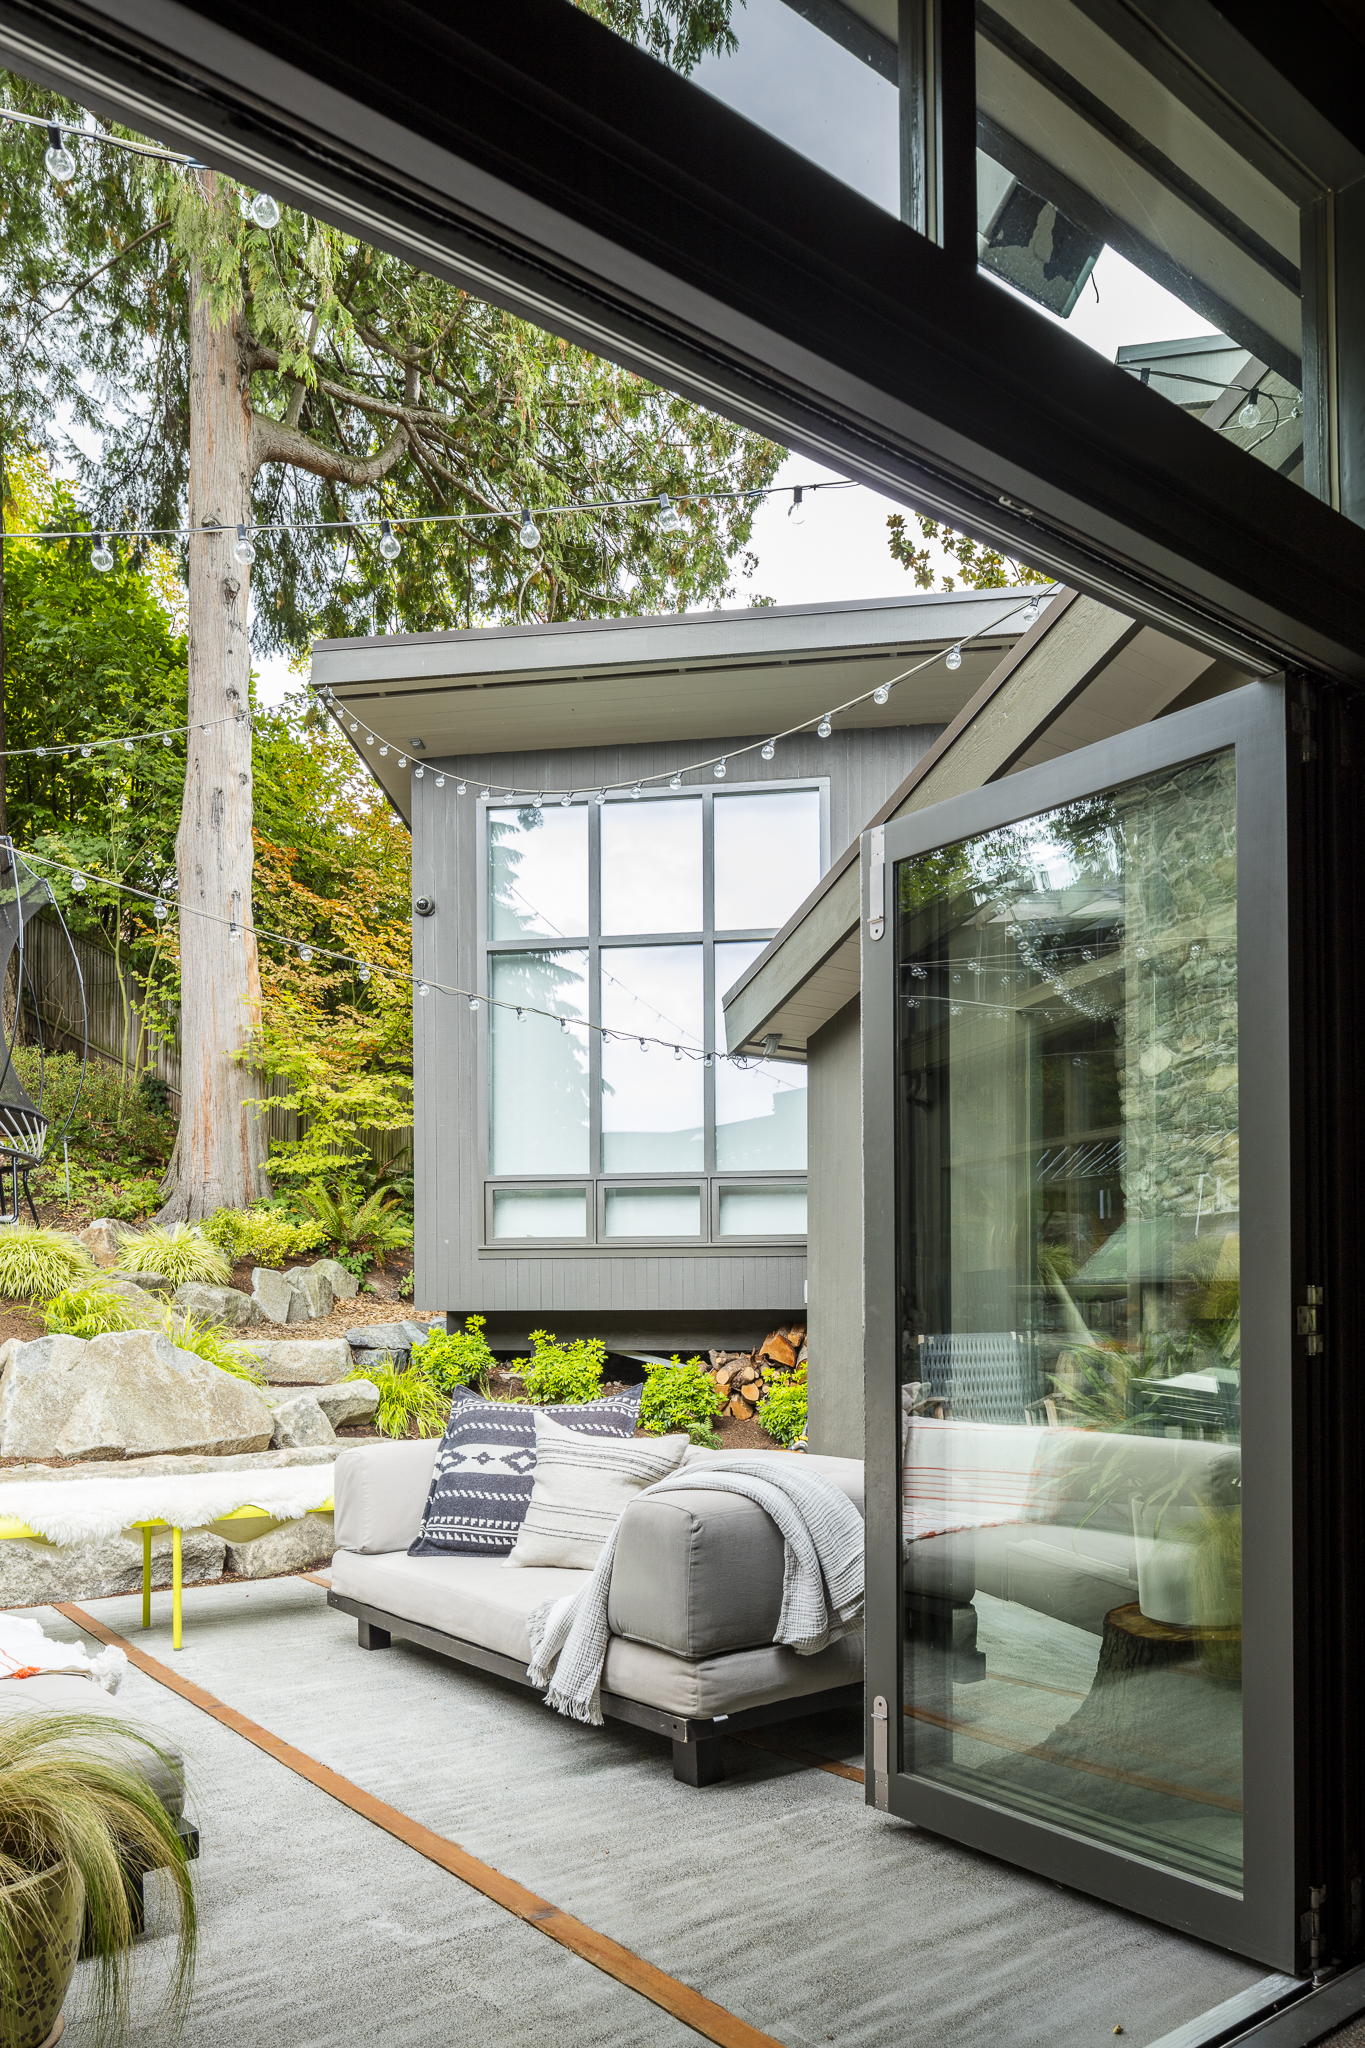 paul-moon-design-windermere-contemporary-back-patio.jpg